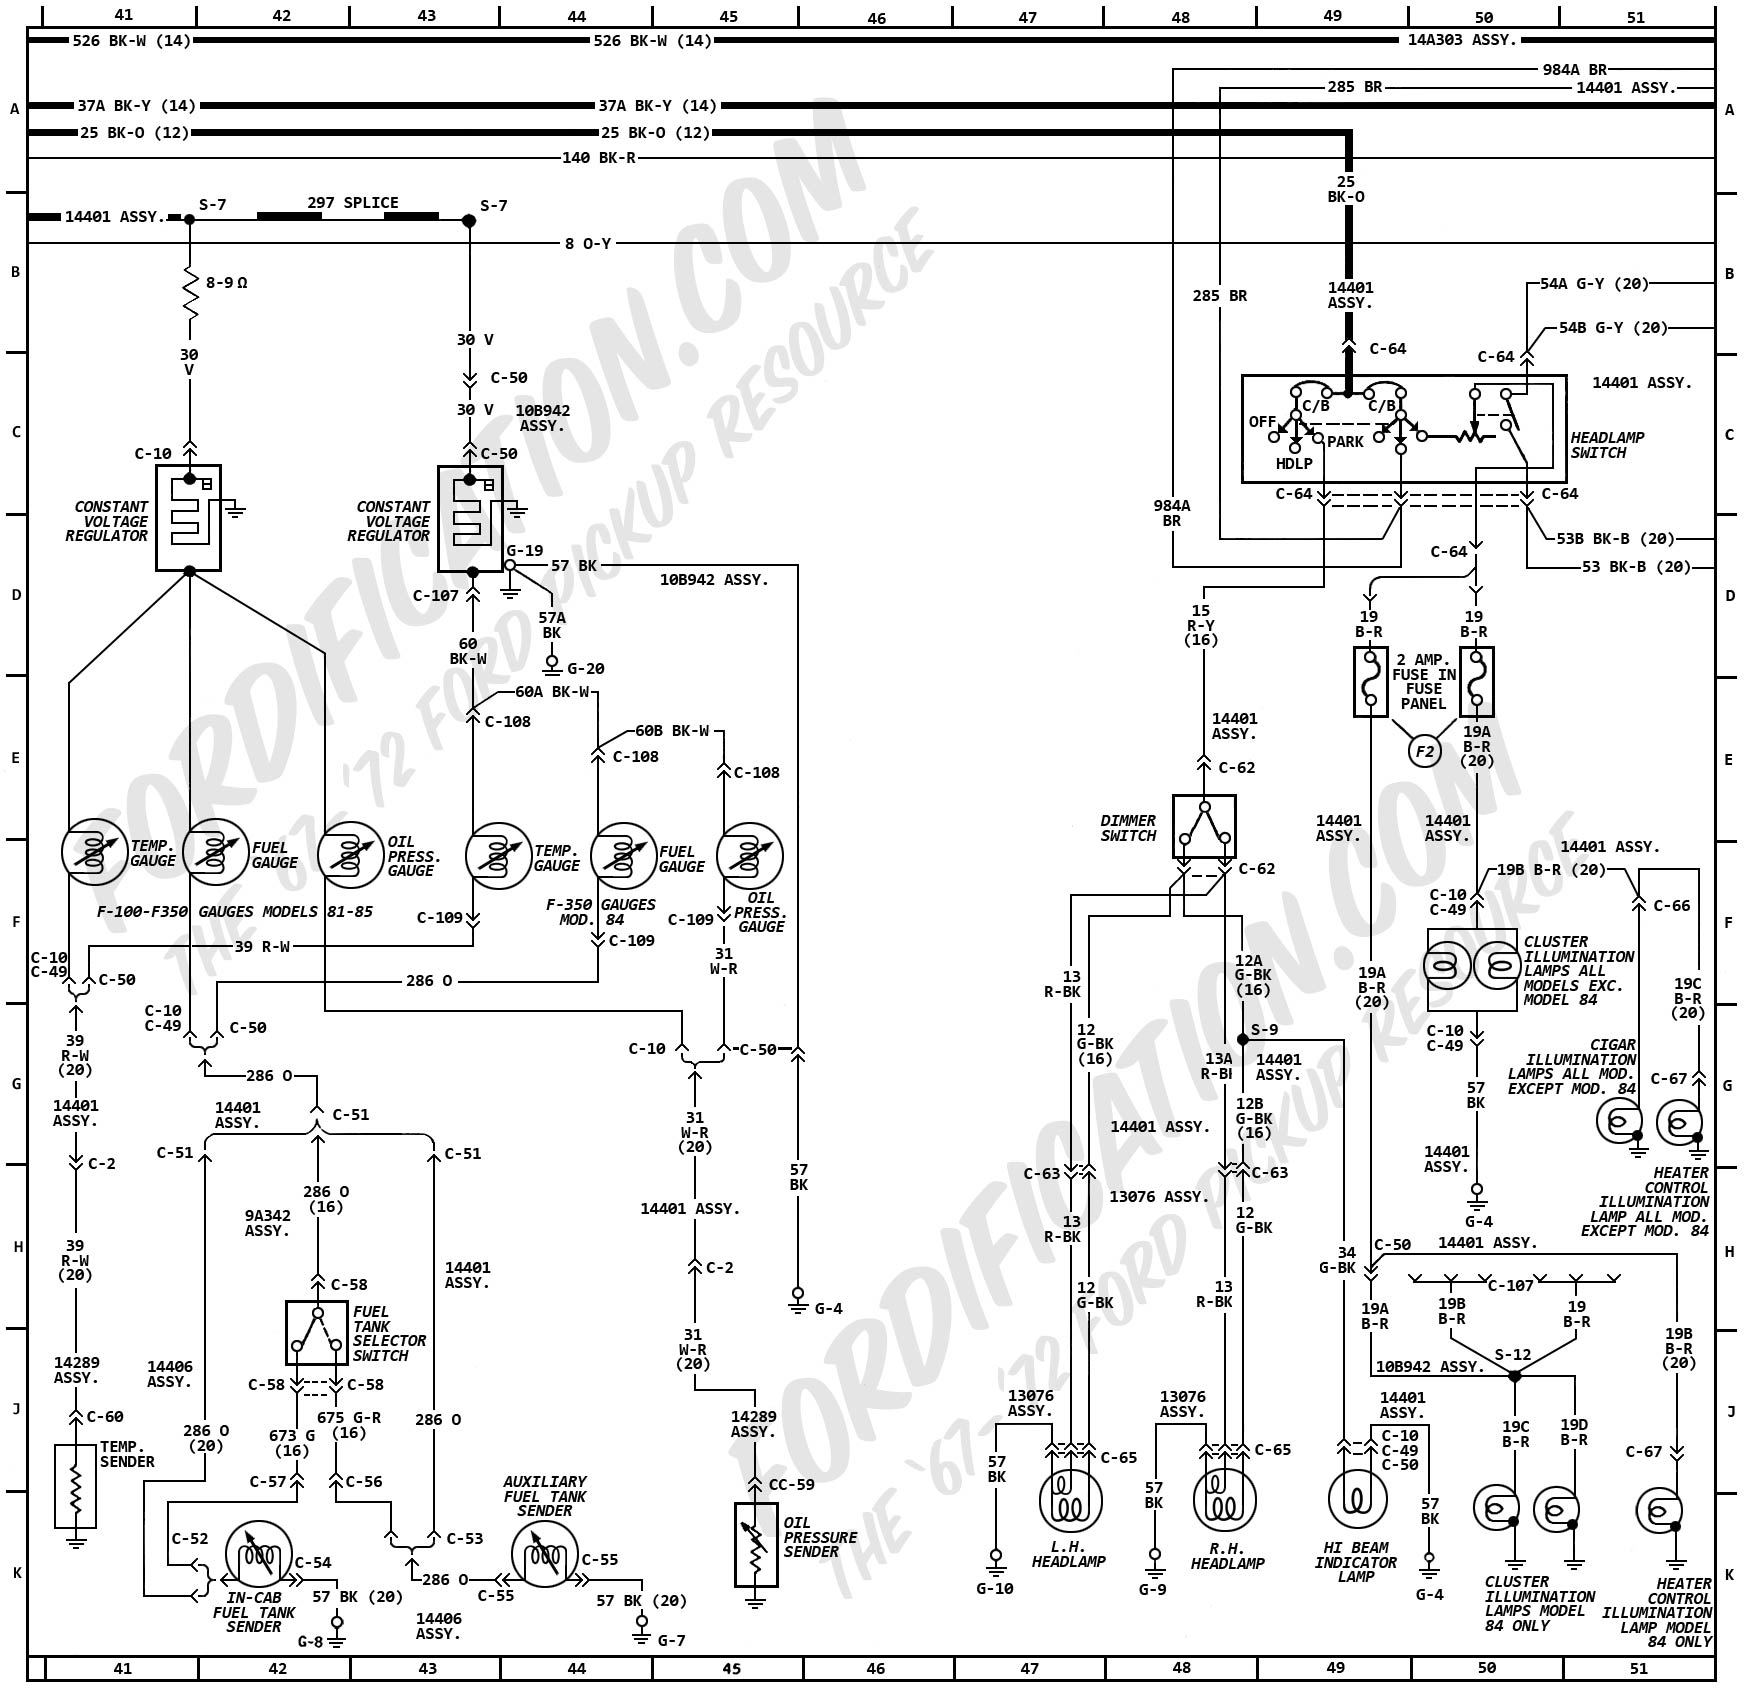 Ubbthreads likewise Mercury together with 93448 More Delta Vs Wye Transformers moreover Interfacing Relay With Pic Microcontroller further Viewtopic. on note pin connection diagram